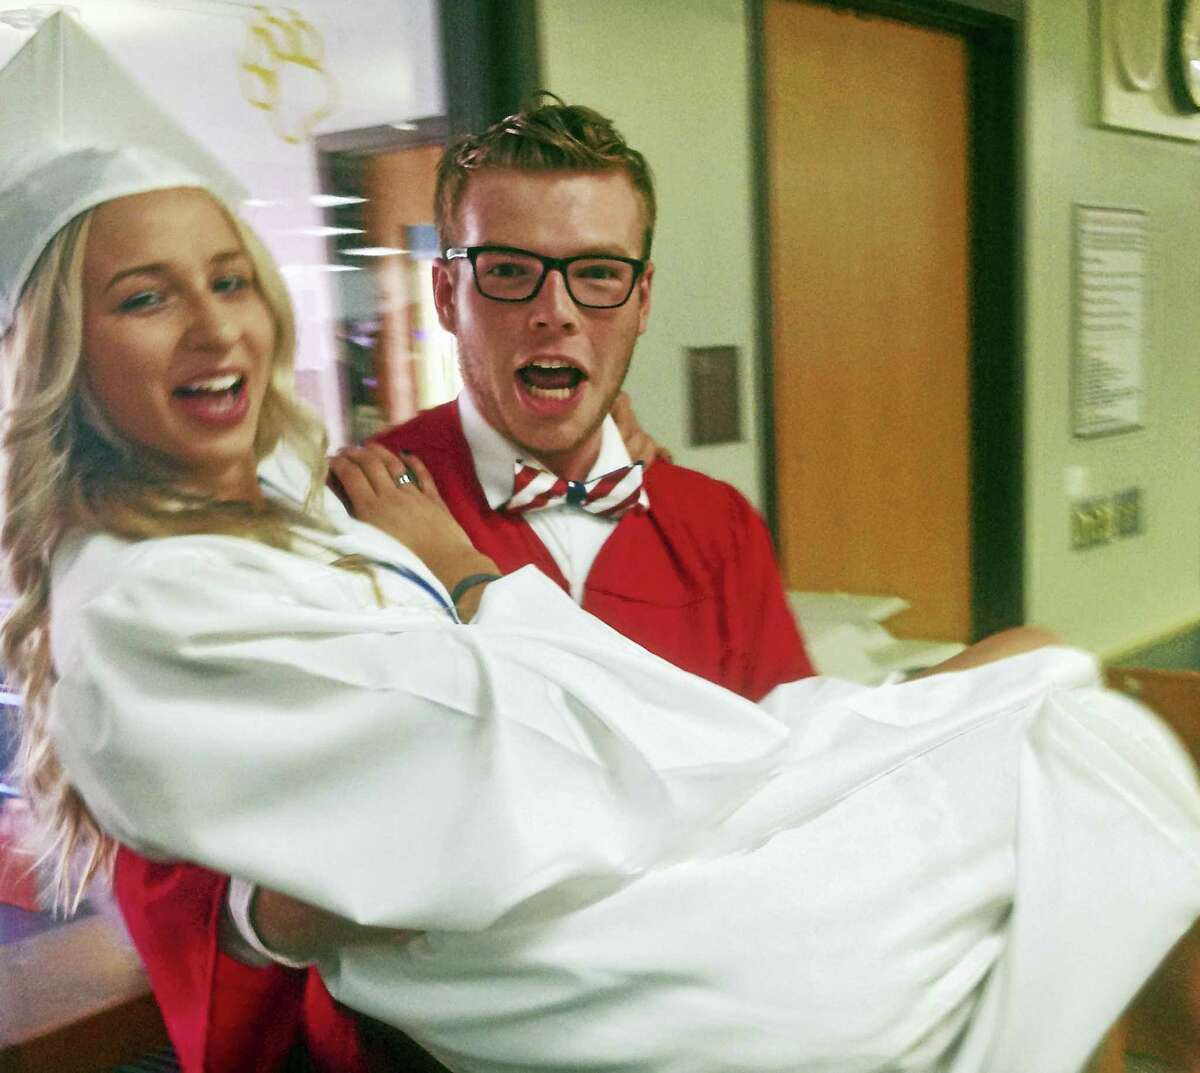 Cromwell High School graduated 153 students in a ceremony on Friday evening.